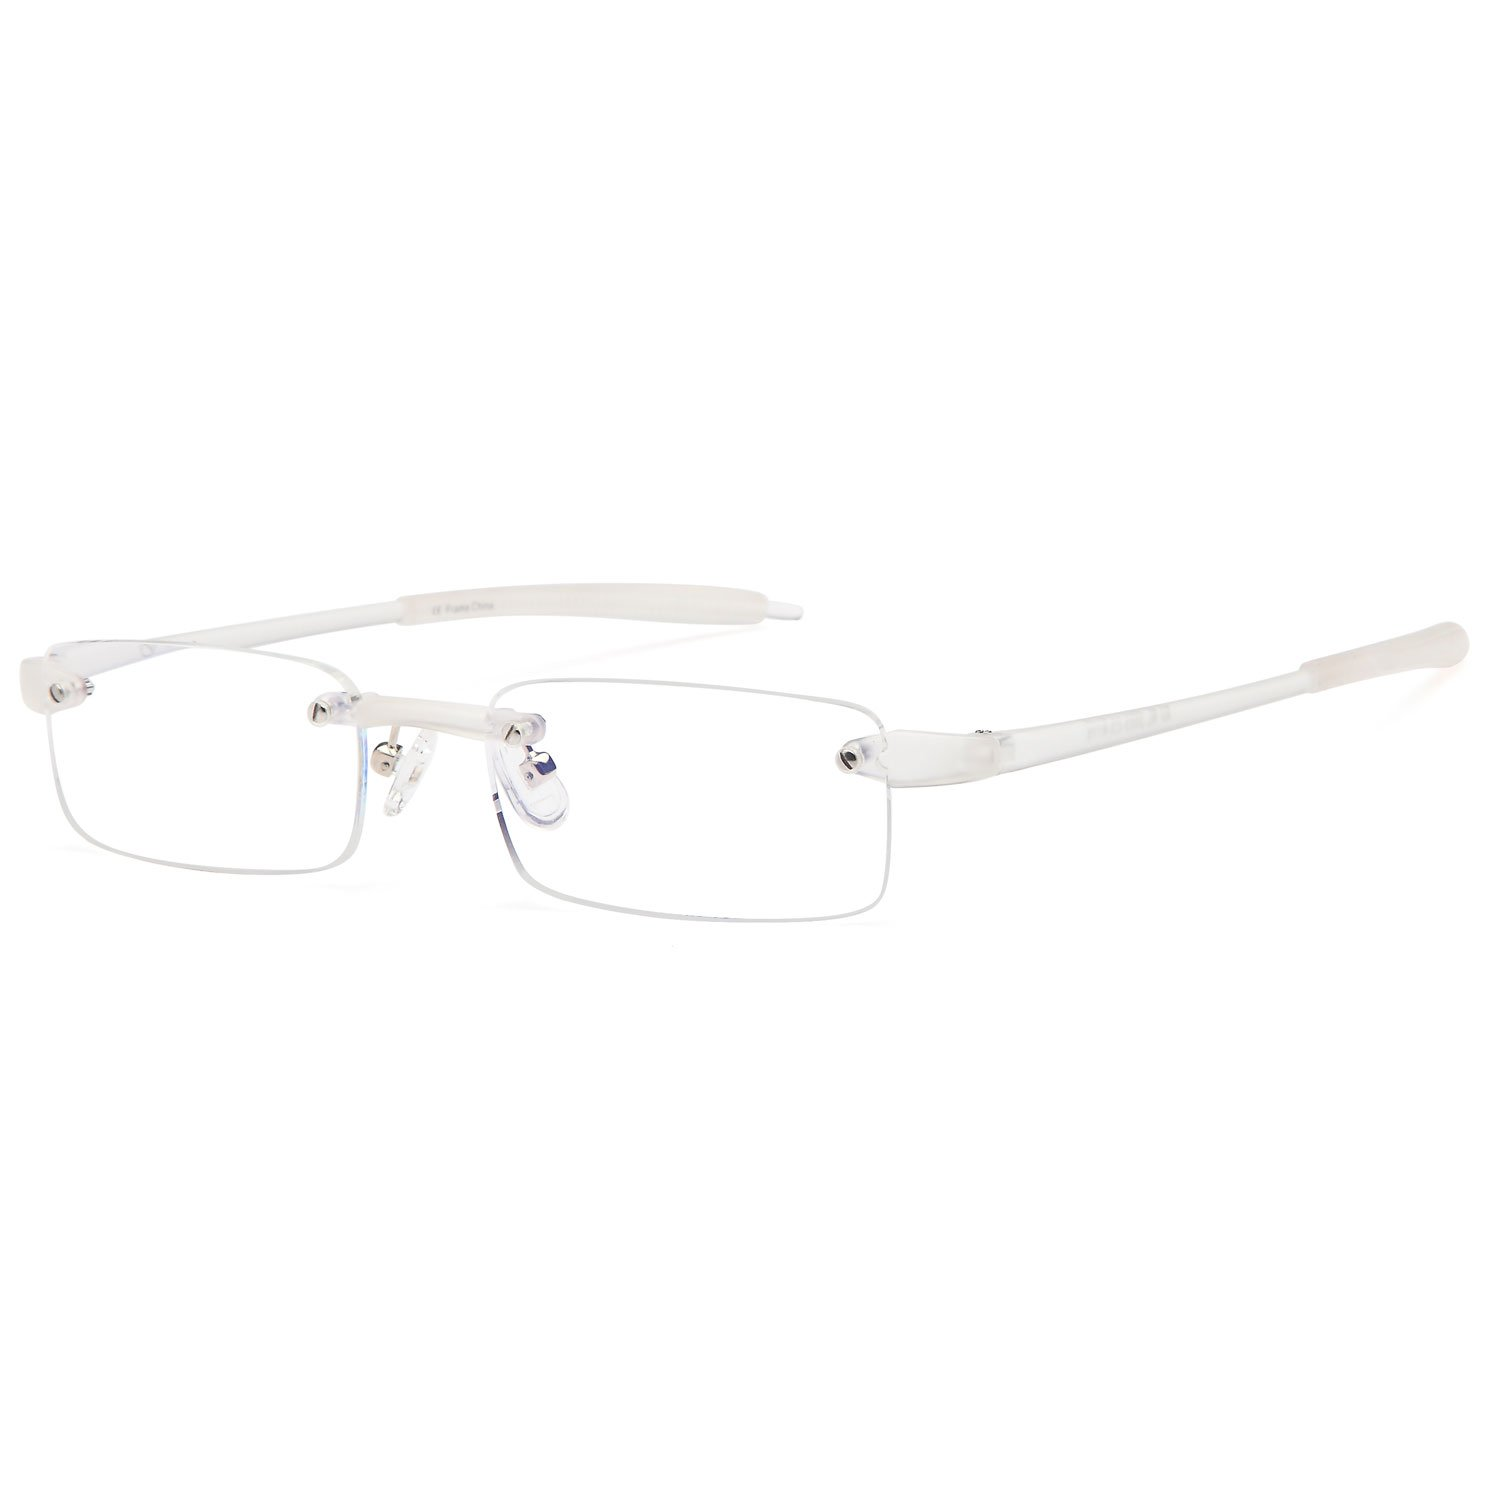 425741de4d92 ALTEC VISION Rimless Readers Lightweight Reading Glasses With Case